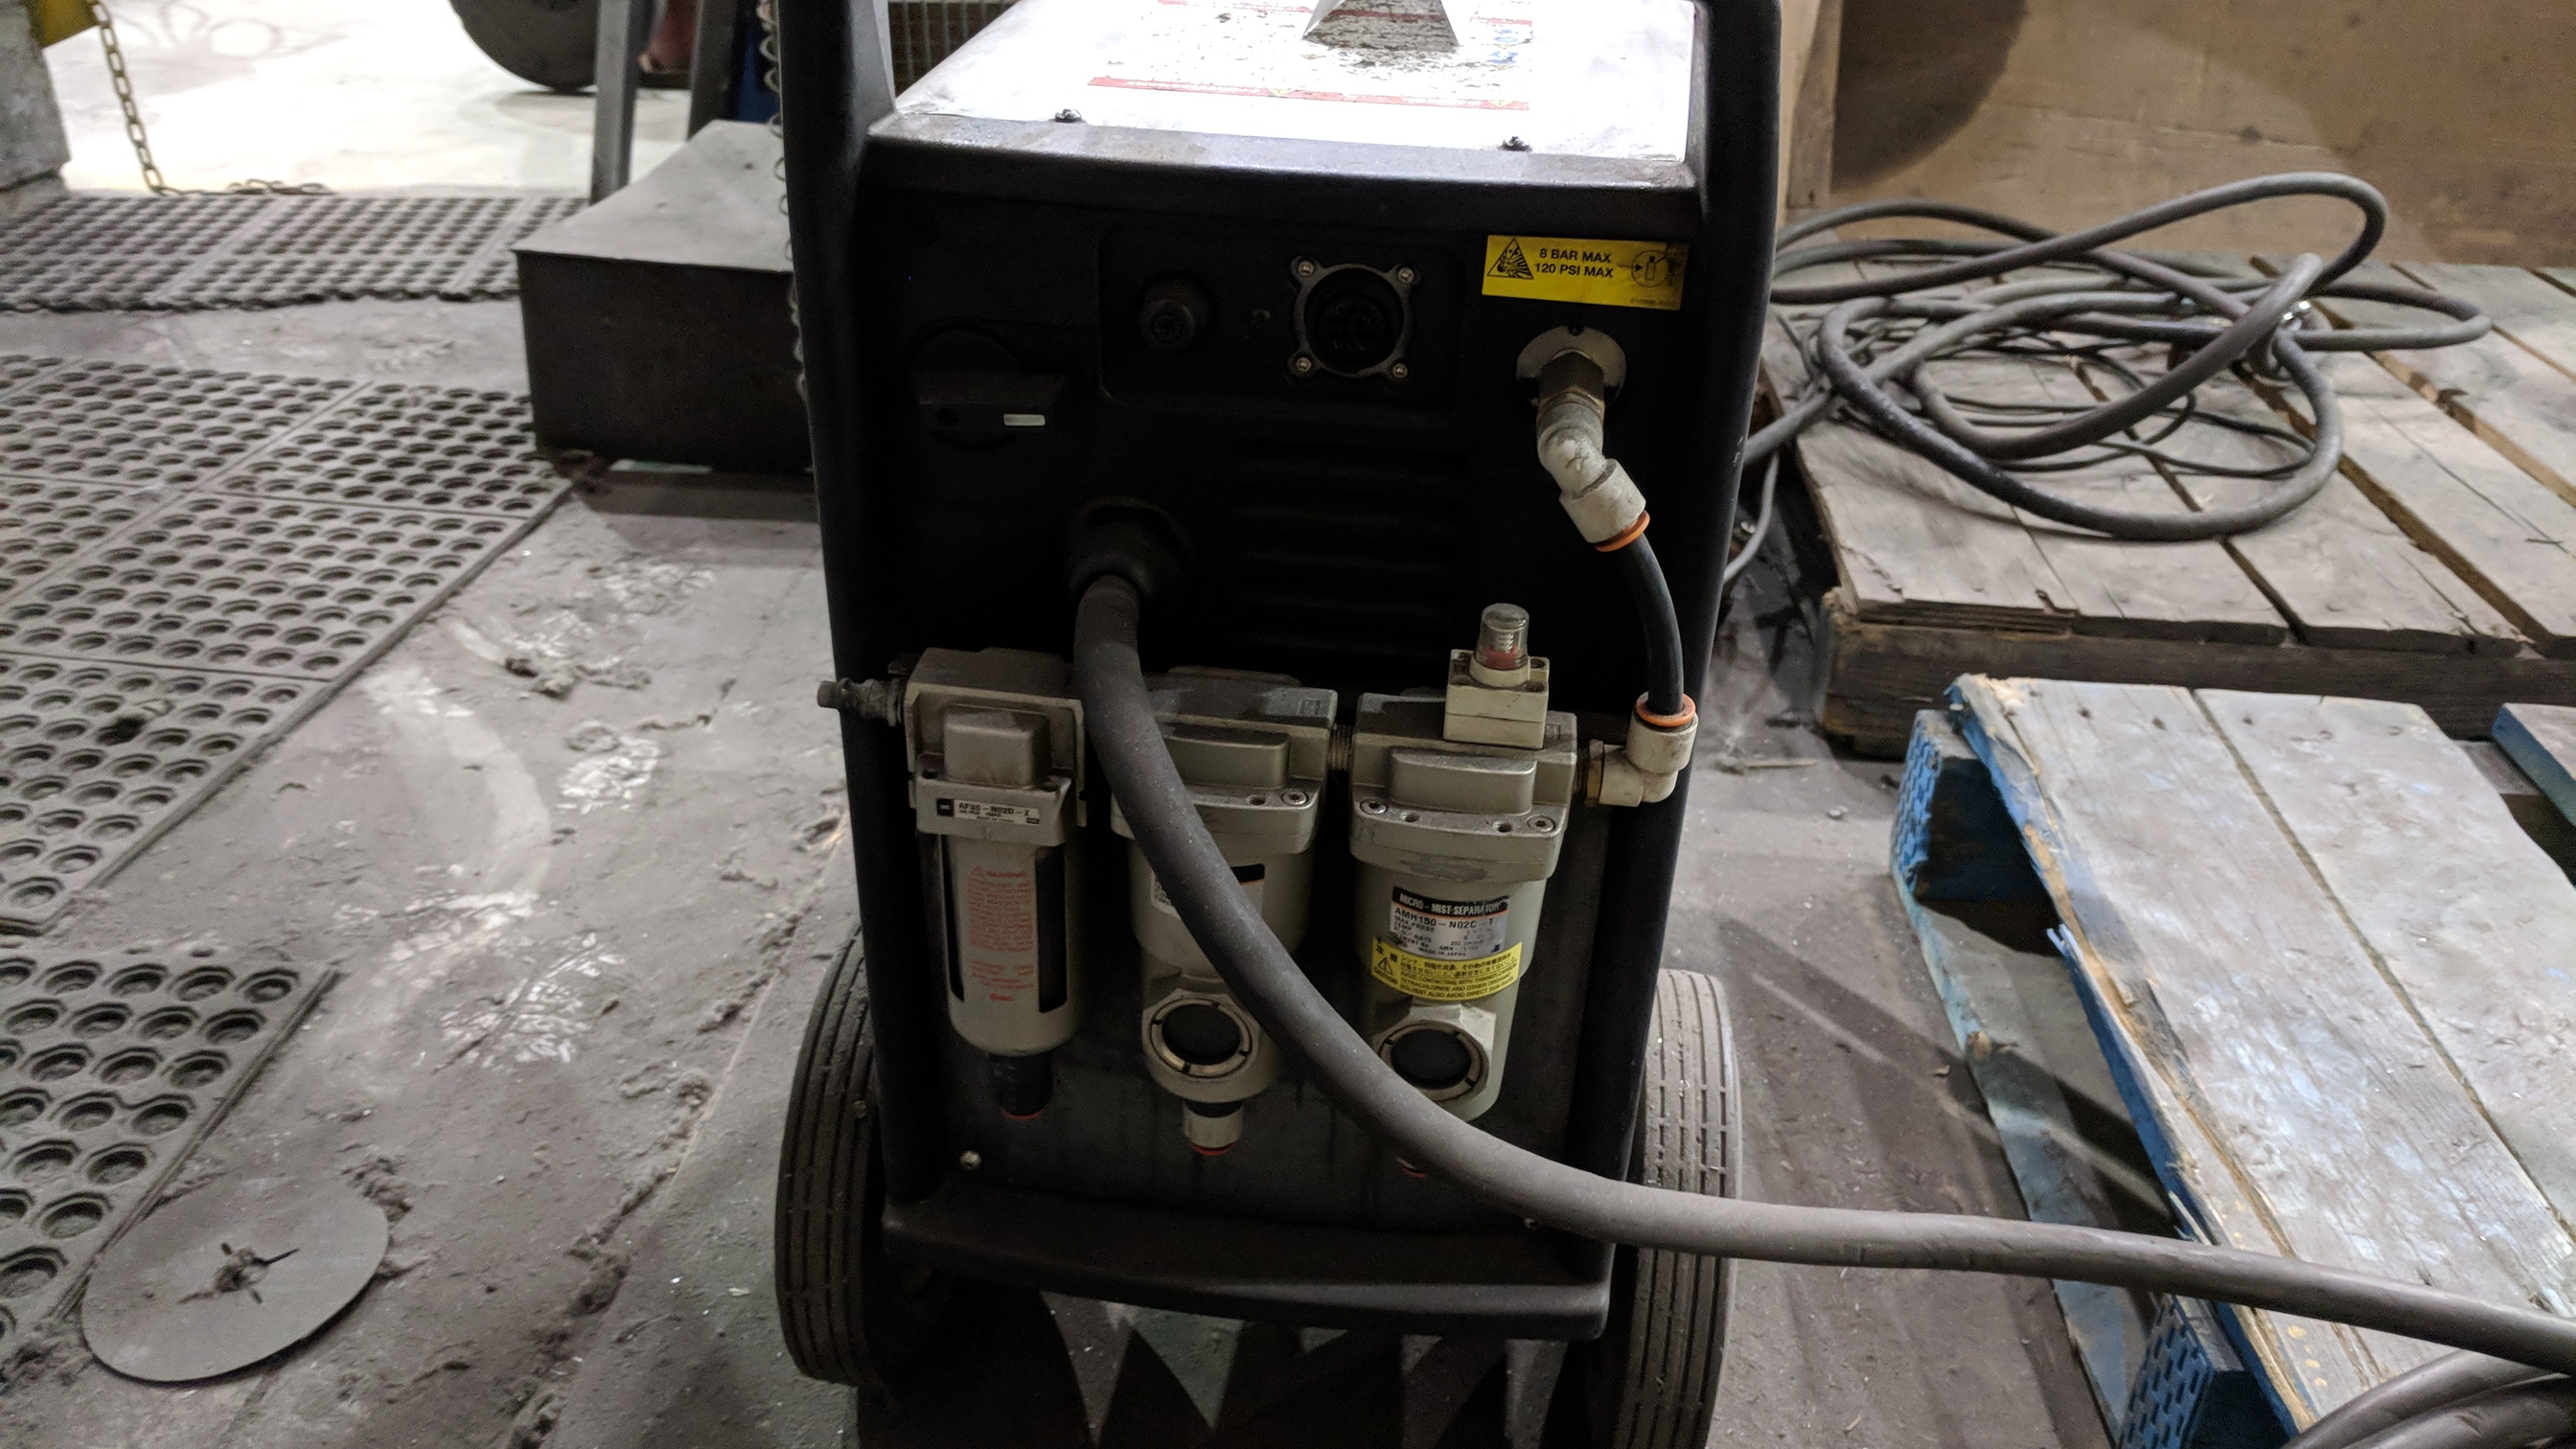 HYPERTHERM POWERMAX 1000 G3 SERIES PORTABLE PLASMA CUTTER WITH CABLES AND GUN, S/N N/A - Image 2 of 4